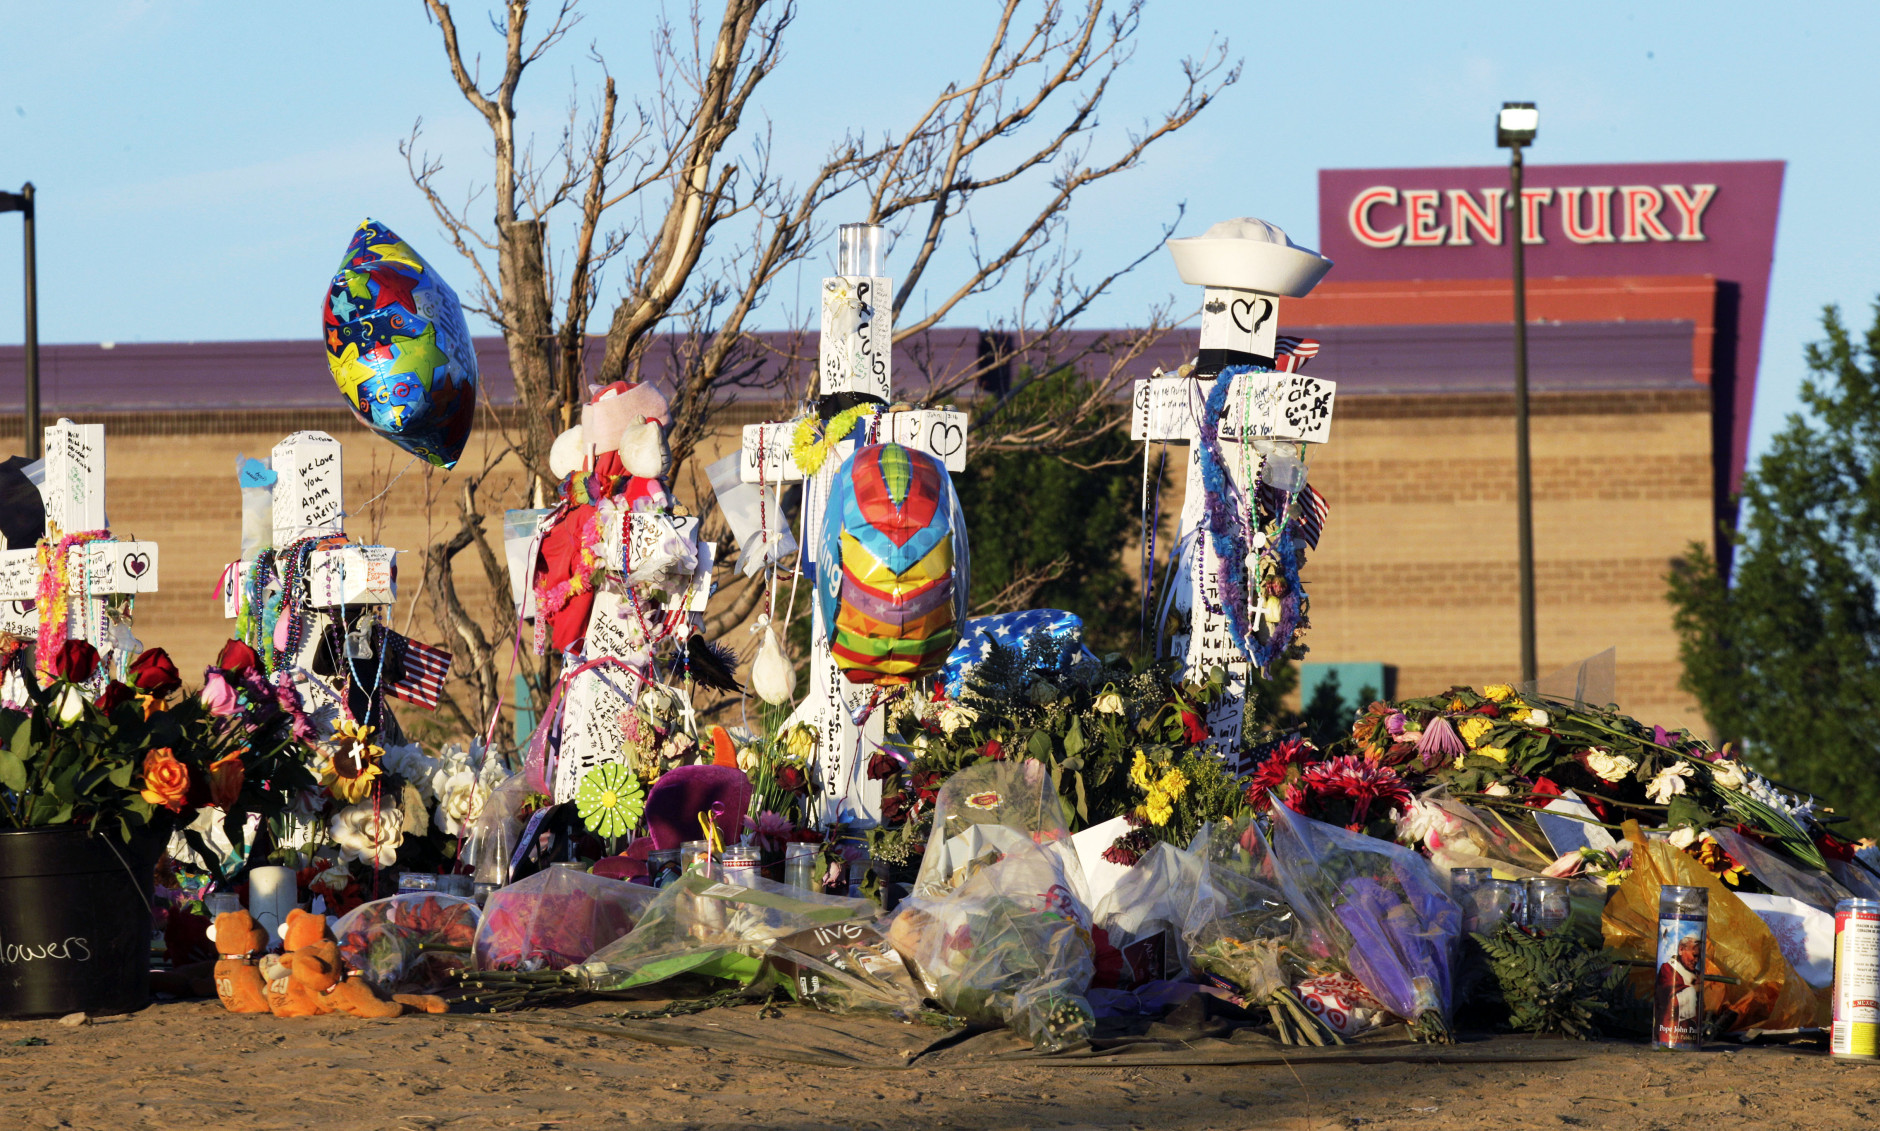 """FILE - In this July 27, 2012 file photo, crosses, flowers and other mementos of the victims of the Aurora, Colo. movie theater shooting are shown at sunrise with the movie theater in the background. Jury selection begins Tuesday, Jan. 20, 2015, in the trial of accused gunman James Holmes in the shootings at the Denver-area movie theater showing """"The Dark Knight Rises"""" that left 12 dead and 70 wounded. Prosecutors are seeking the death penalty. Holmes pleaded not guilty by reason of insanity. His attorneys have acknowledged he was the gunman but say he is mentally ill and was gripped by a psychotic episode when he opened fire in the theater. (AP Photo/Ted S. Warren, File)"""